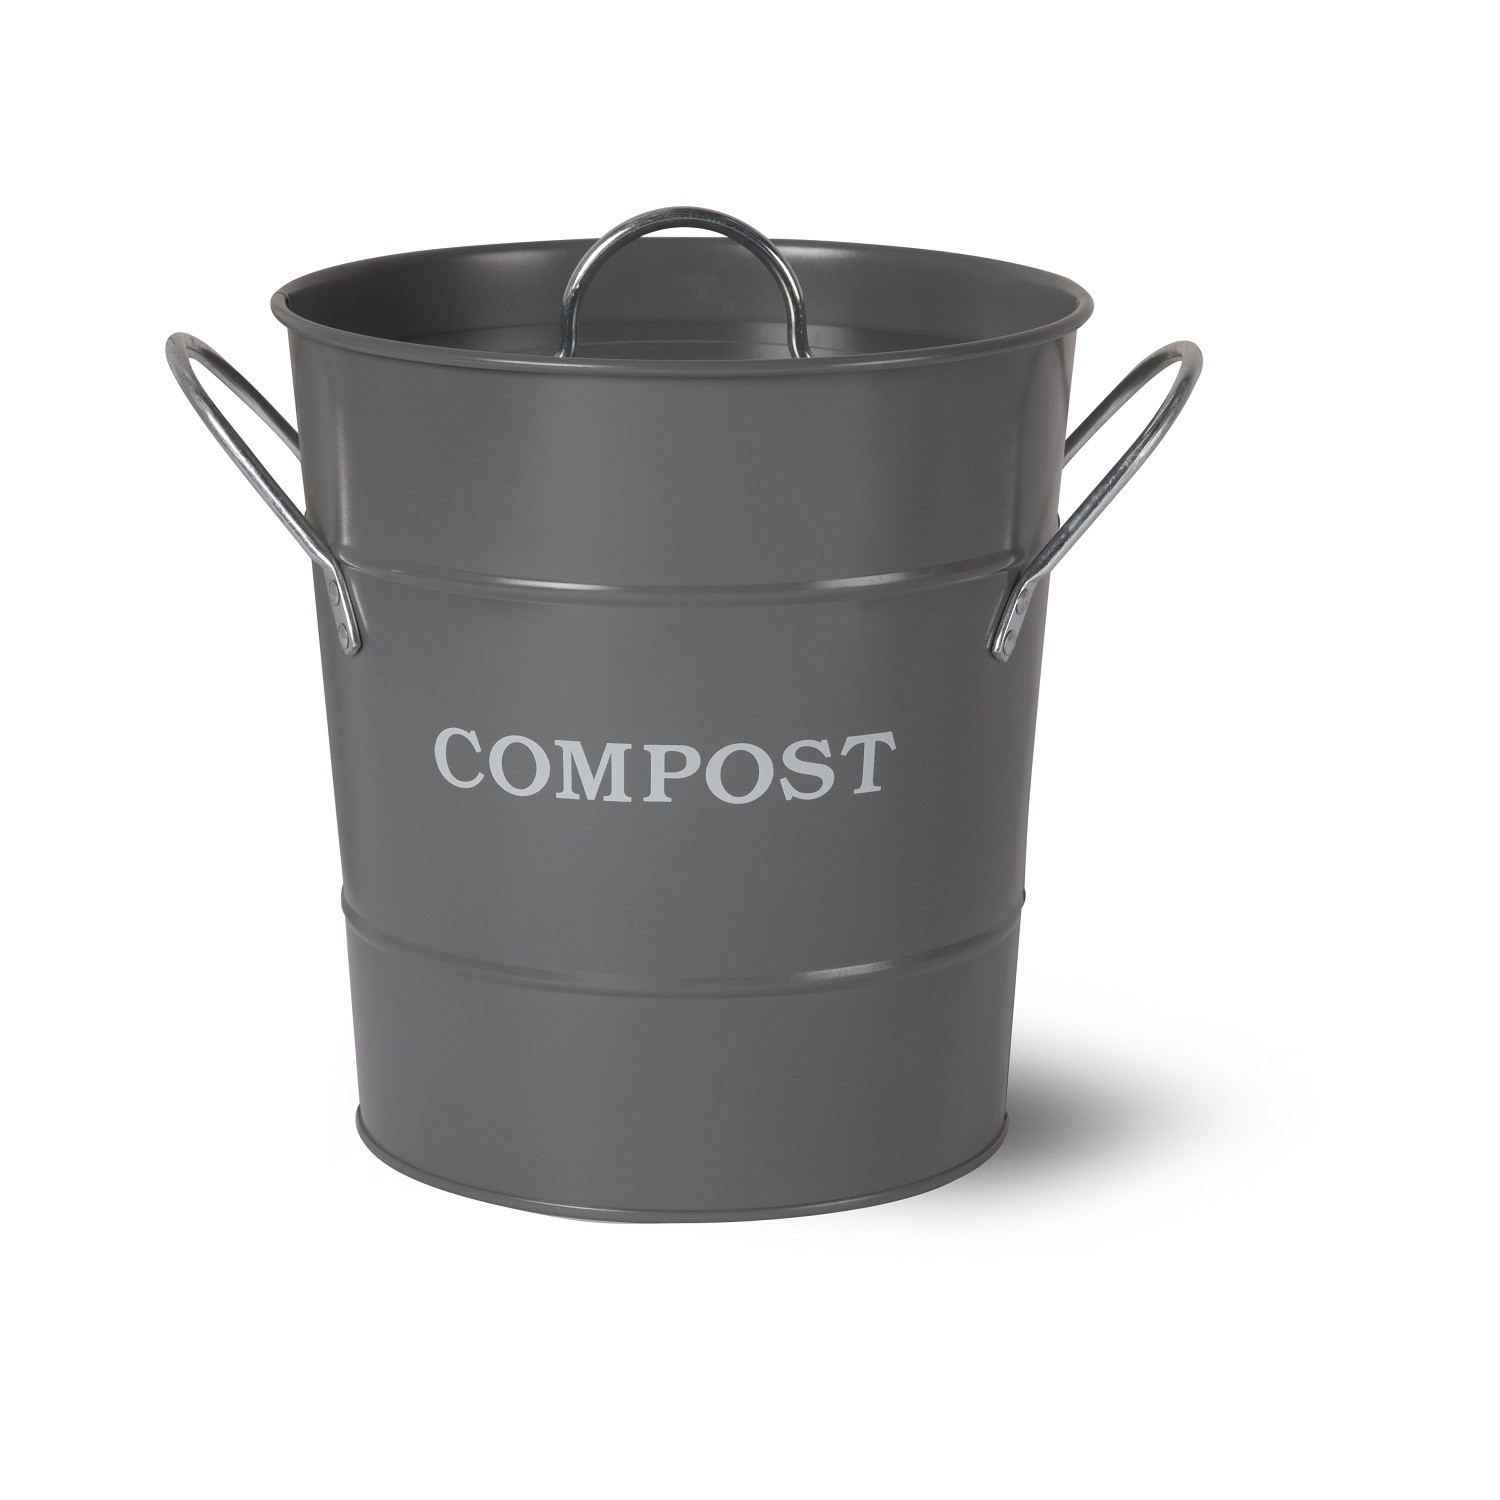 Compost Bucket Charcoal  The Blue Door. Commercial Kitchen Cleaning. Kitchen Windows. Soup Kitchen. High Kitchen Chairs. Italian Pizza Kitchen. Kitchen Sink And Faucet Combo. Savin Bar And Kitchen. Kohler Purist Kitchen Faucet